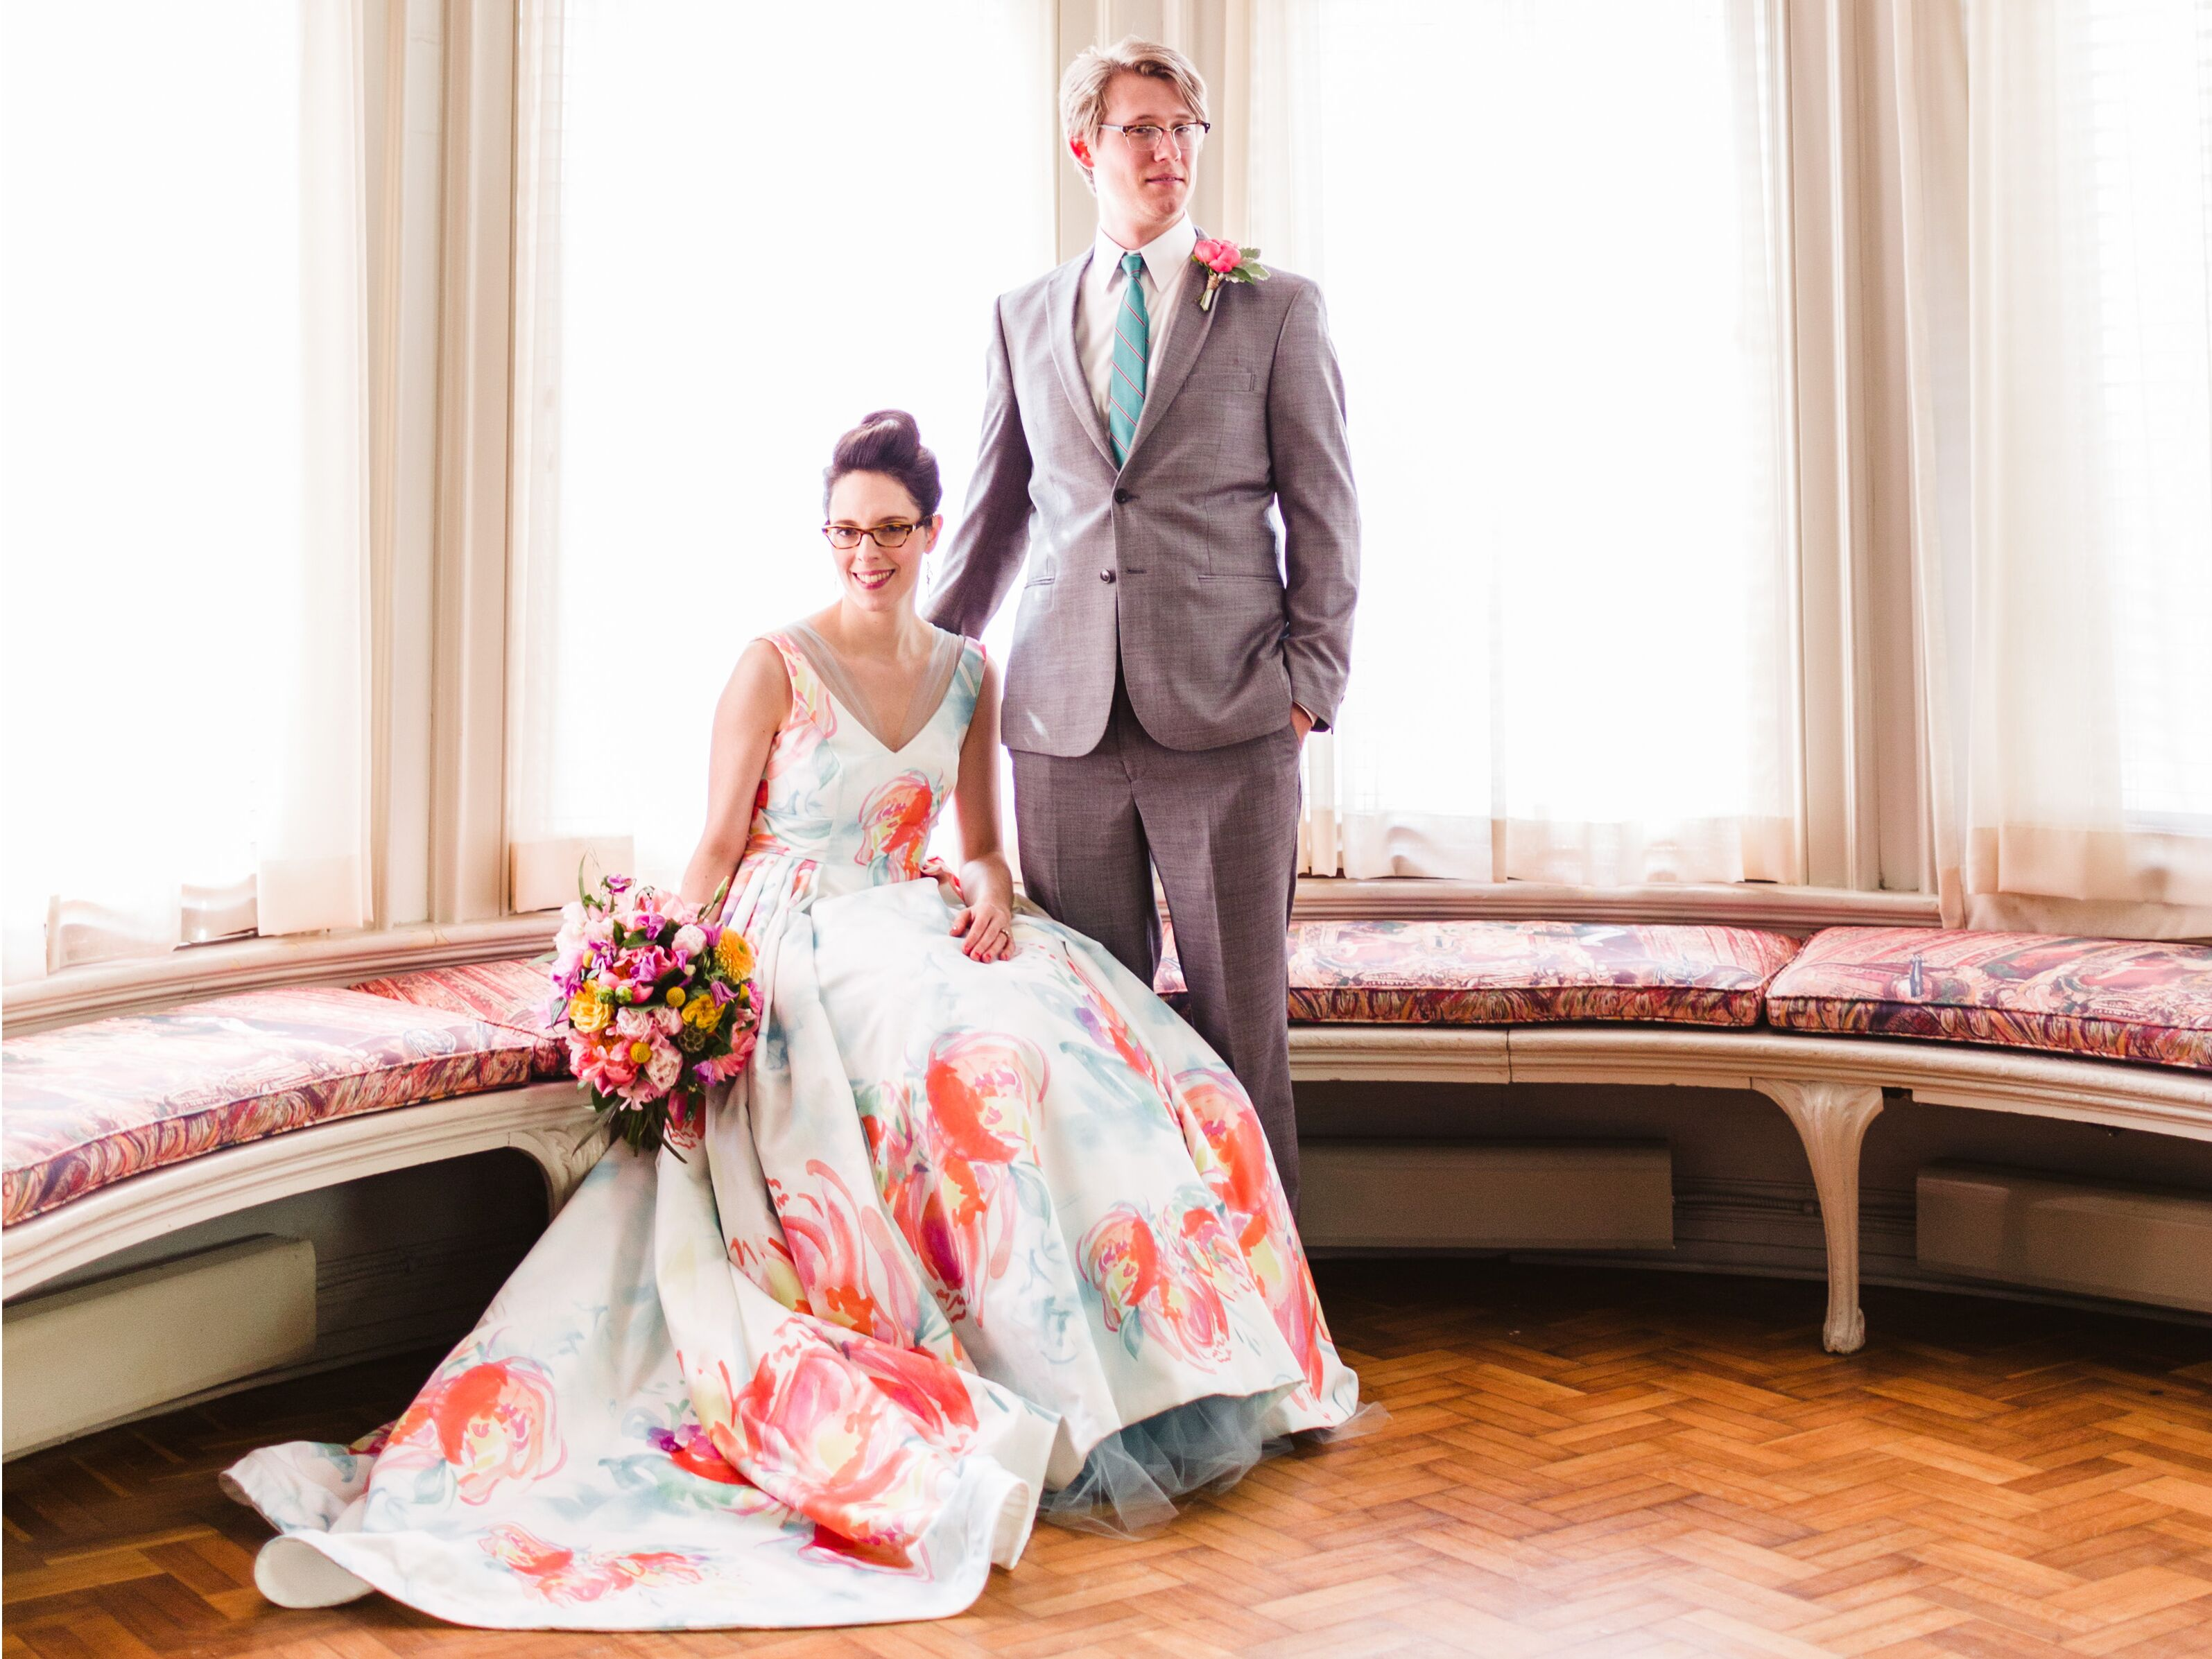 Custom Wedding Dresses: Tips, Examples & More